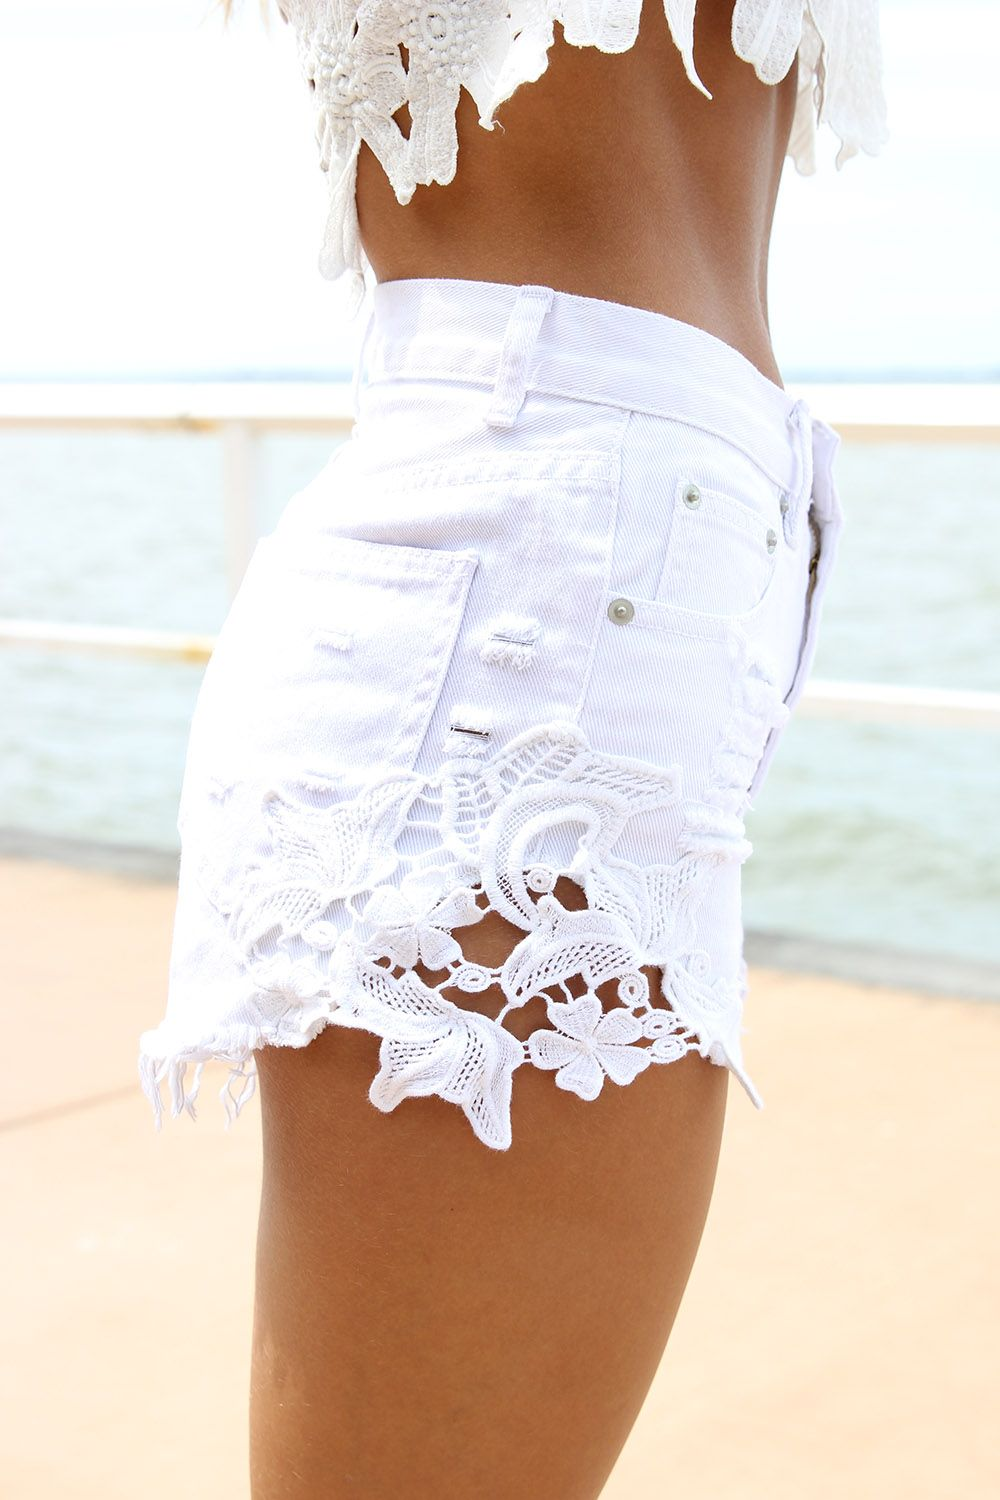 SABO SKIRT Fortune Cut-off Shorts - Off White - 58.0000 | White ...